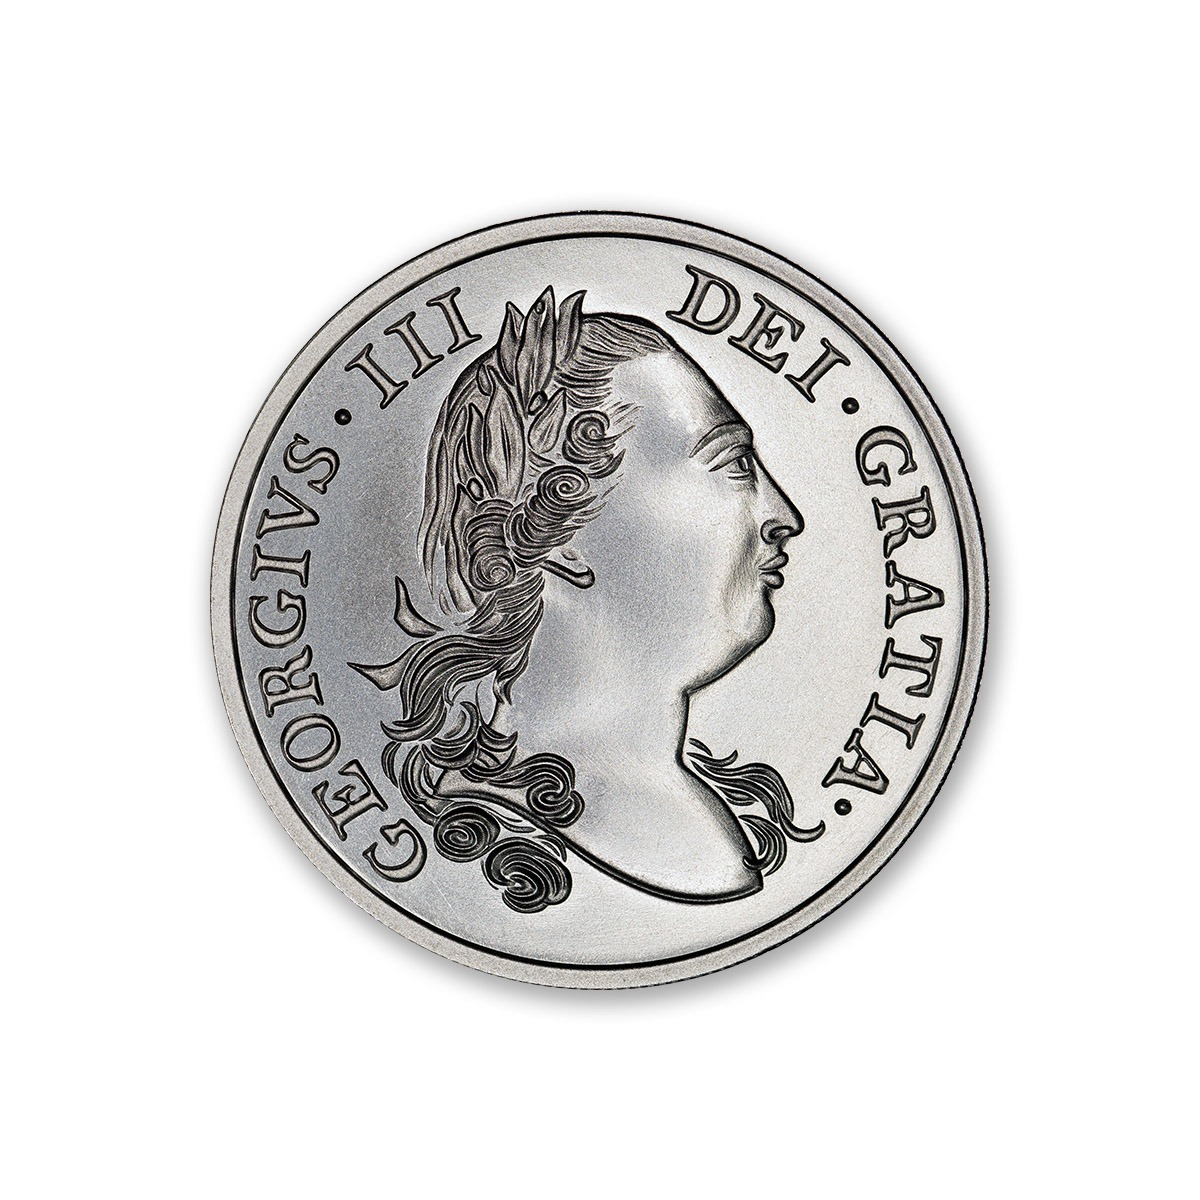 VIRGINIA SHILLING – 2 TROY OUNCE – 39MM